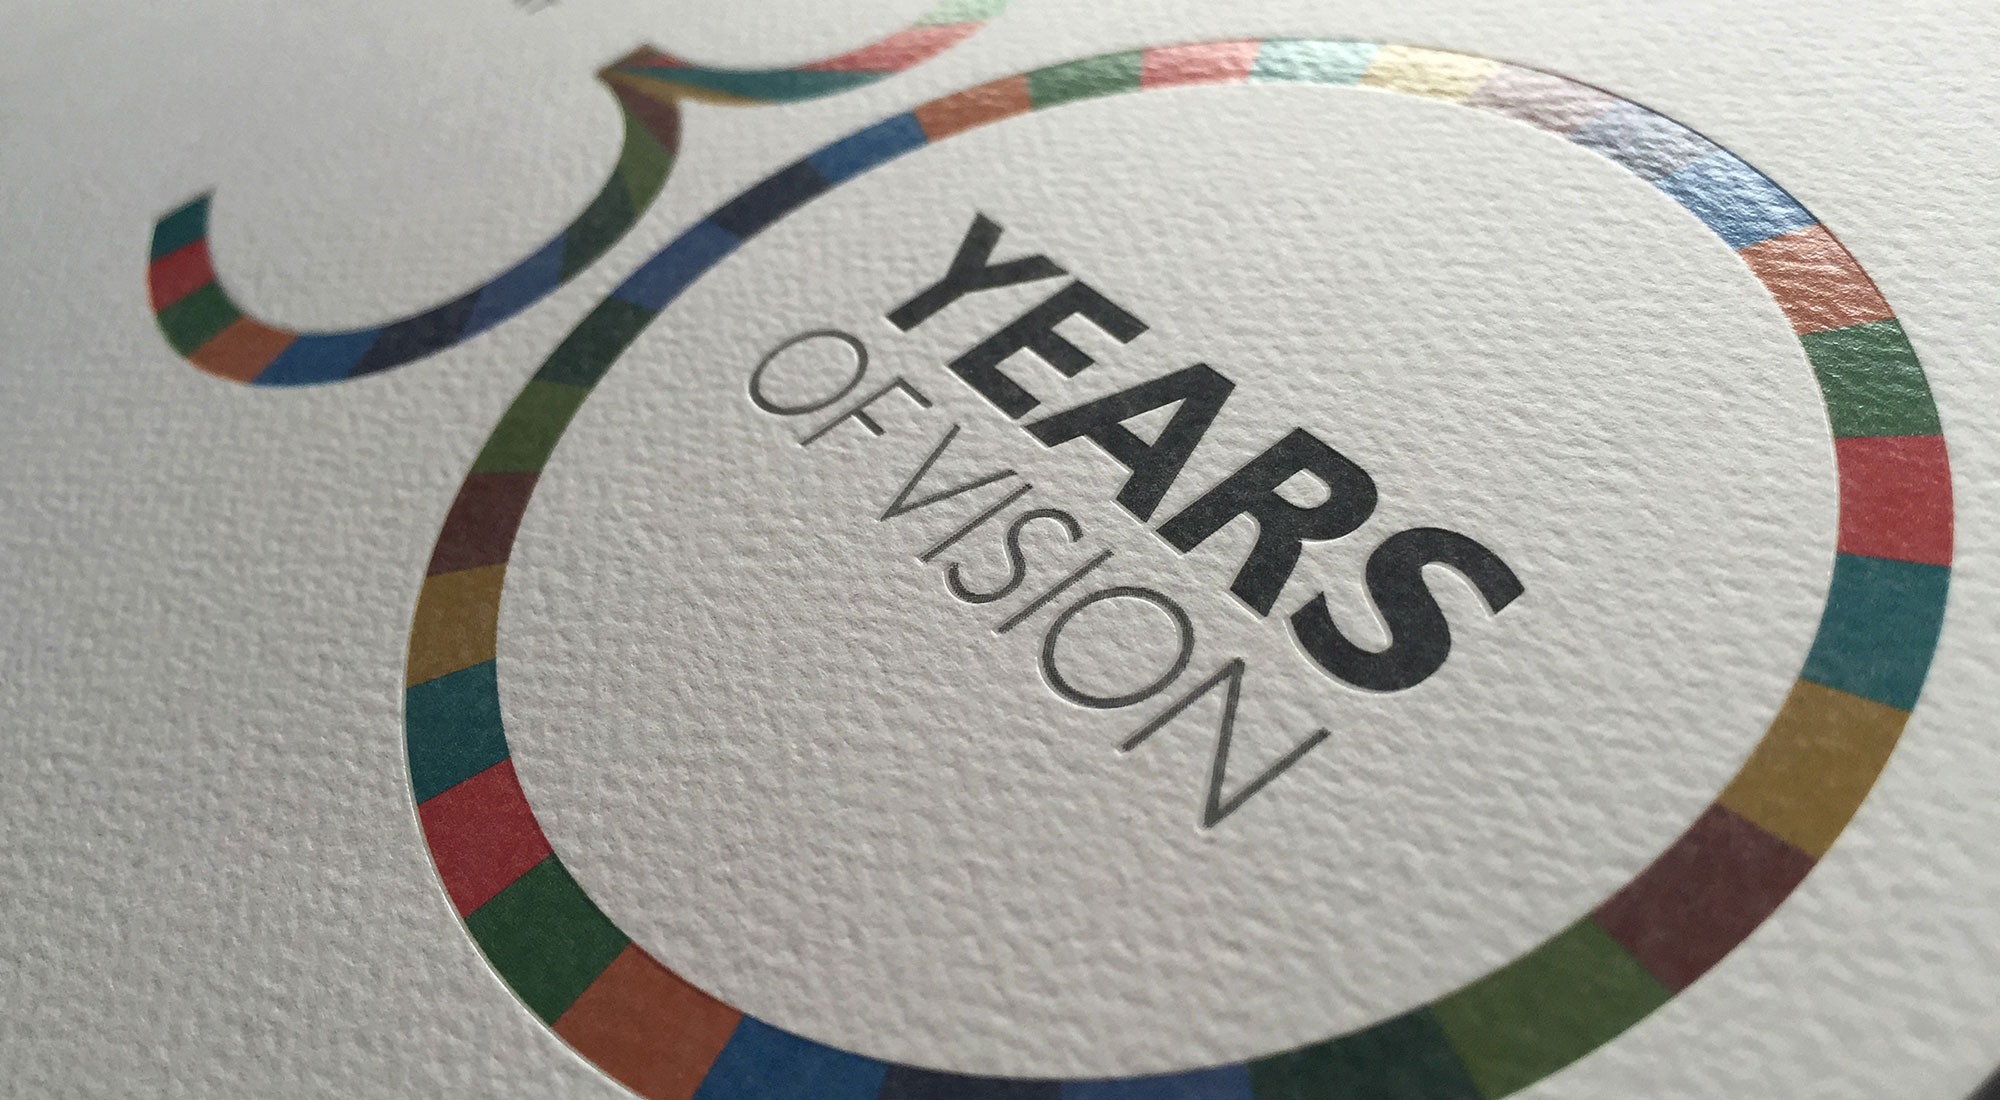 Orbis 30th Anniversary Annual Report Cover by 3rd Edge